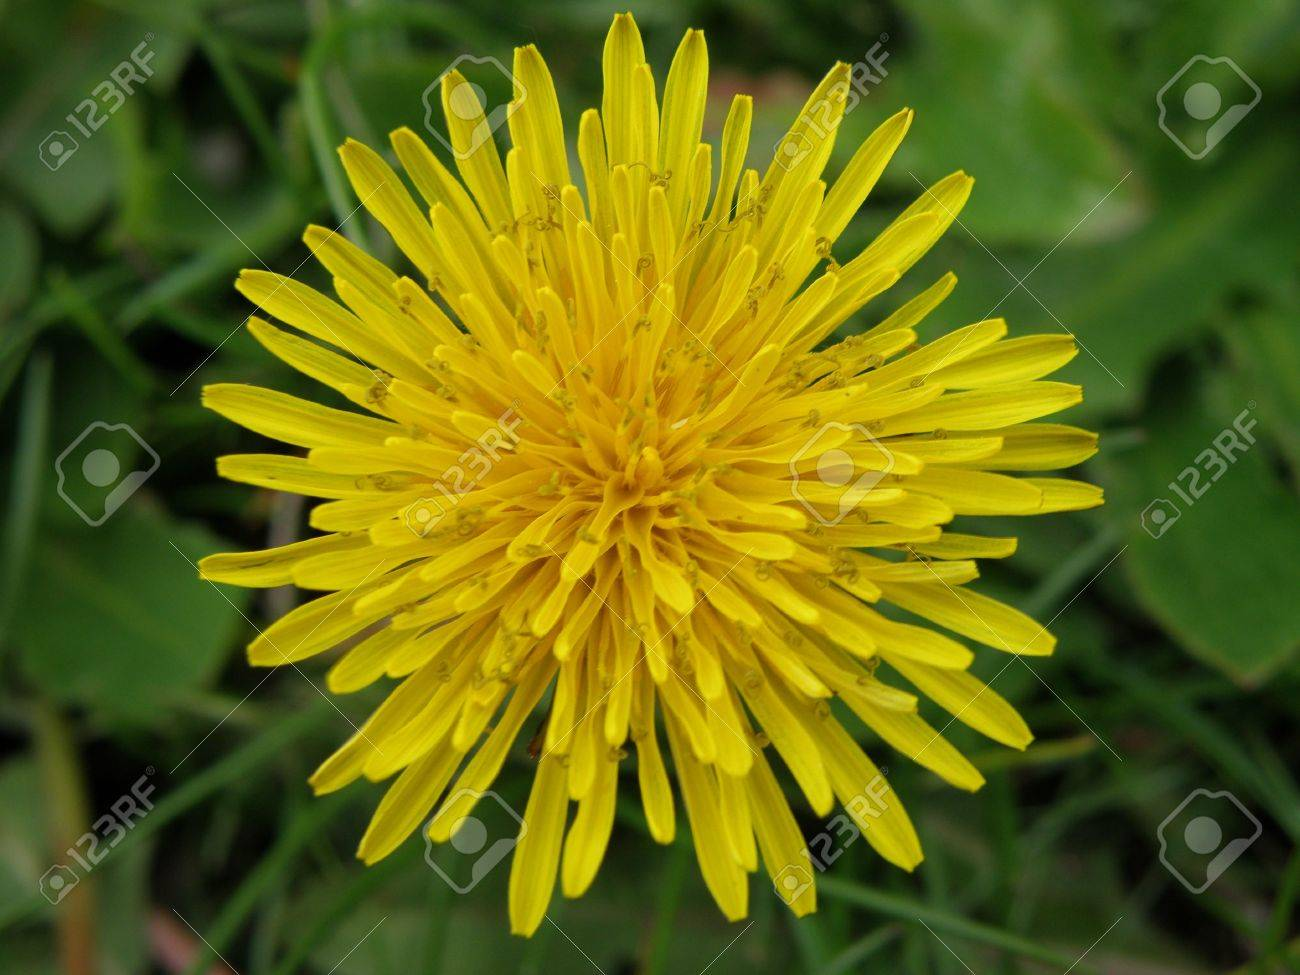 A Bright Yellow Dandelion Detailed Petal Formation Appears Like